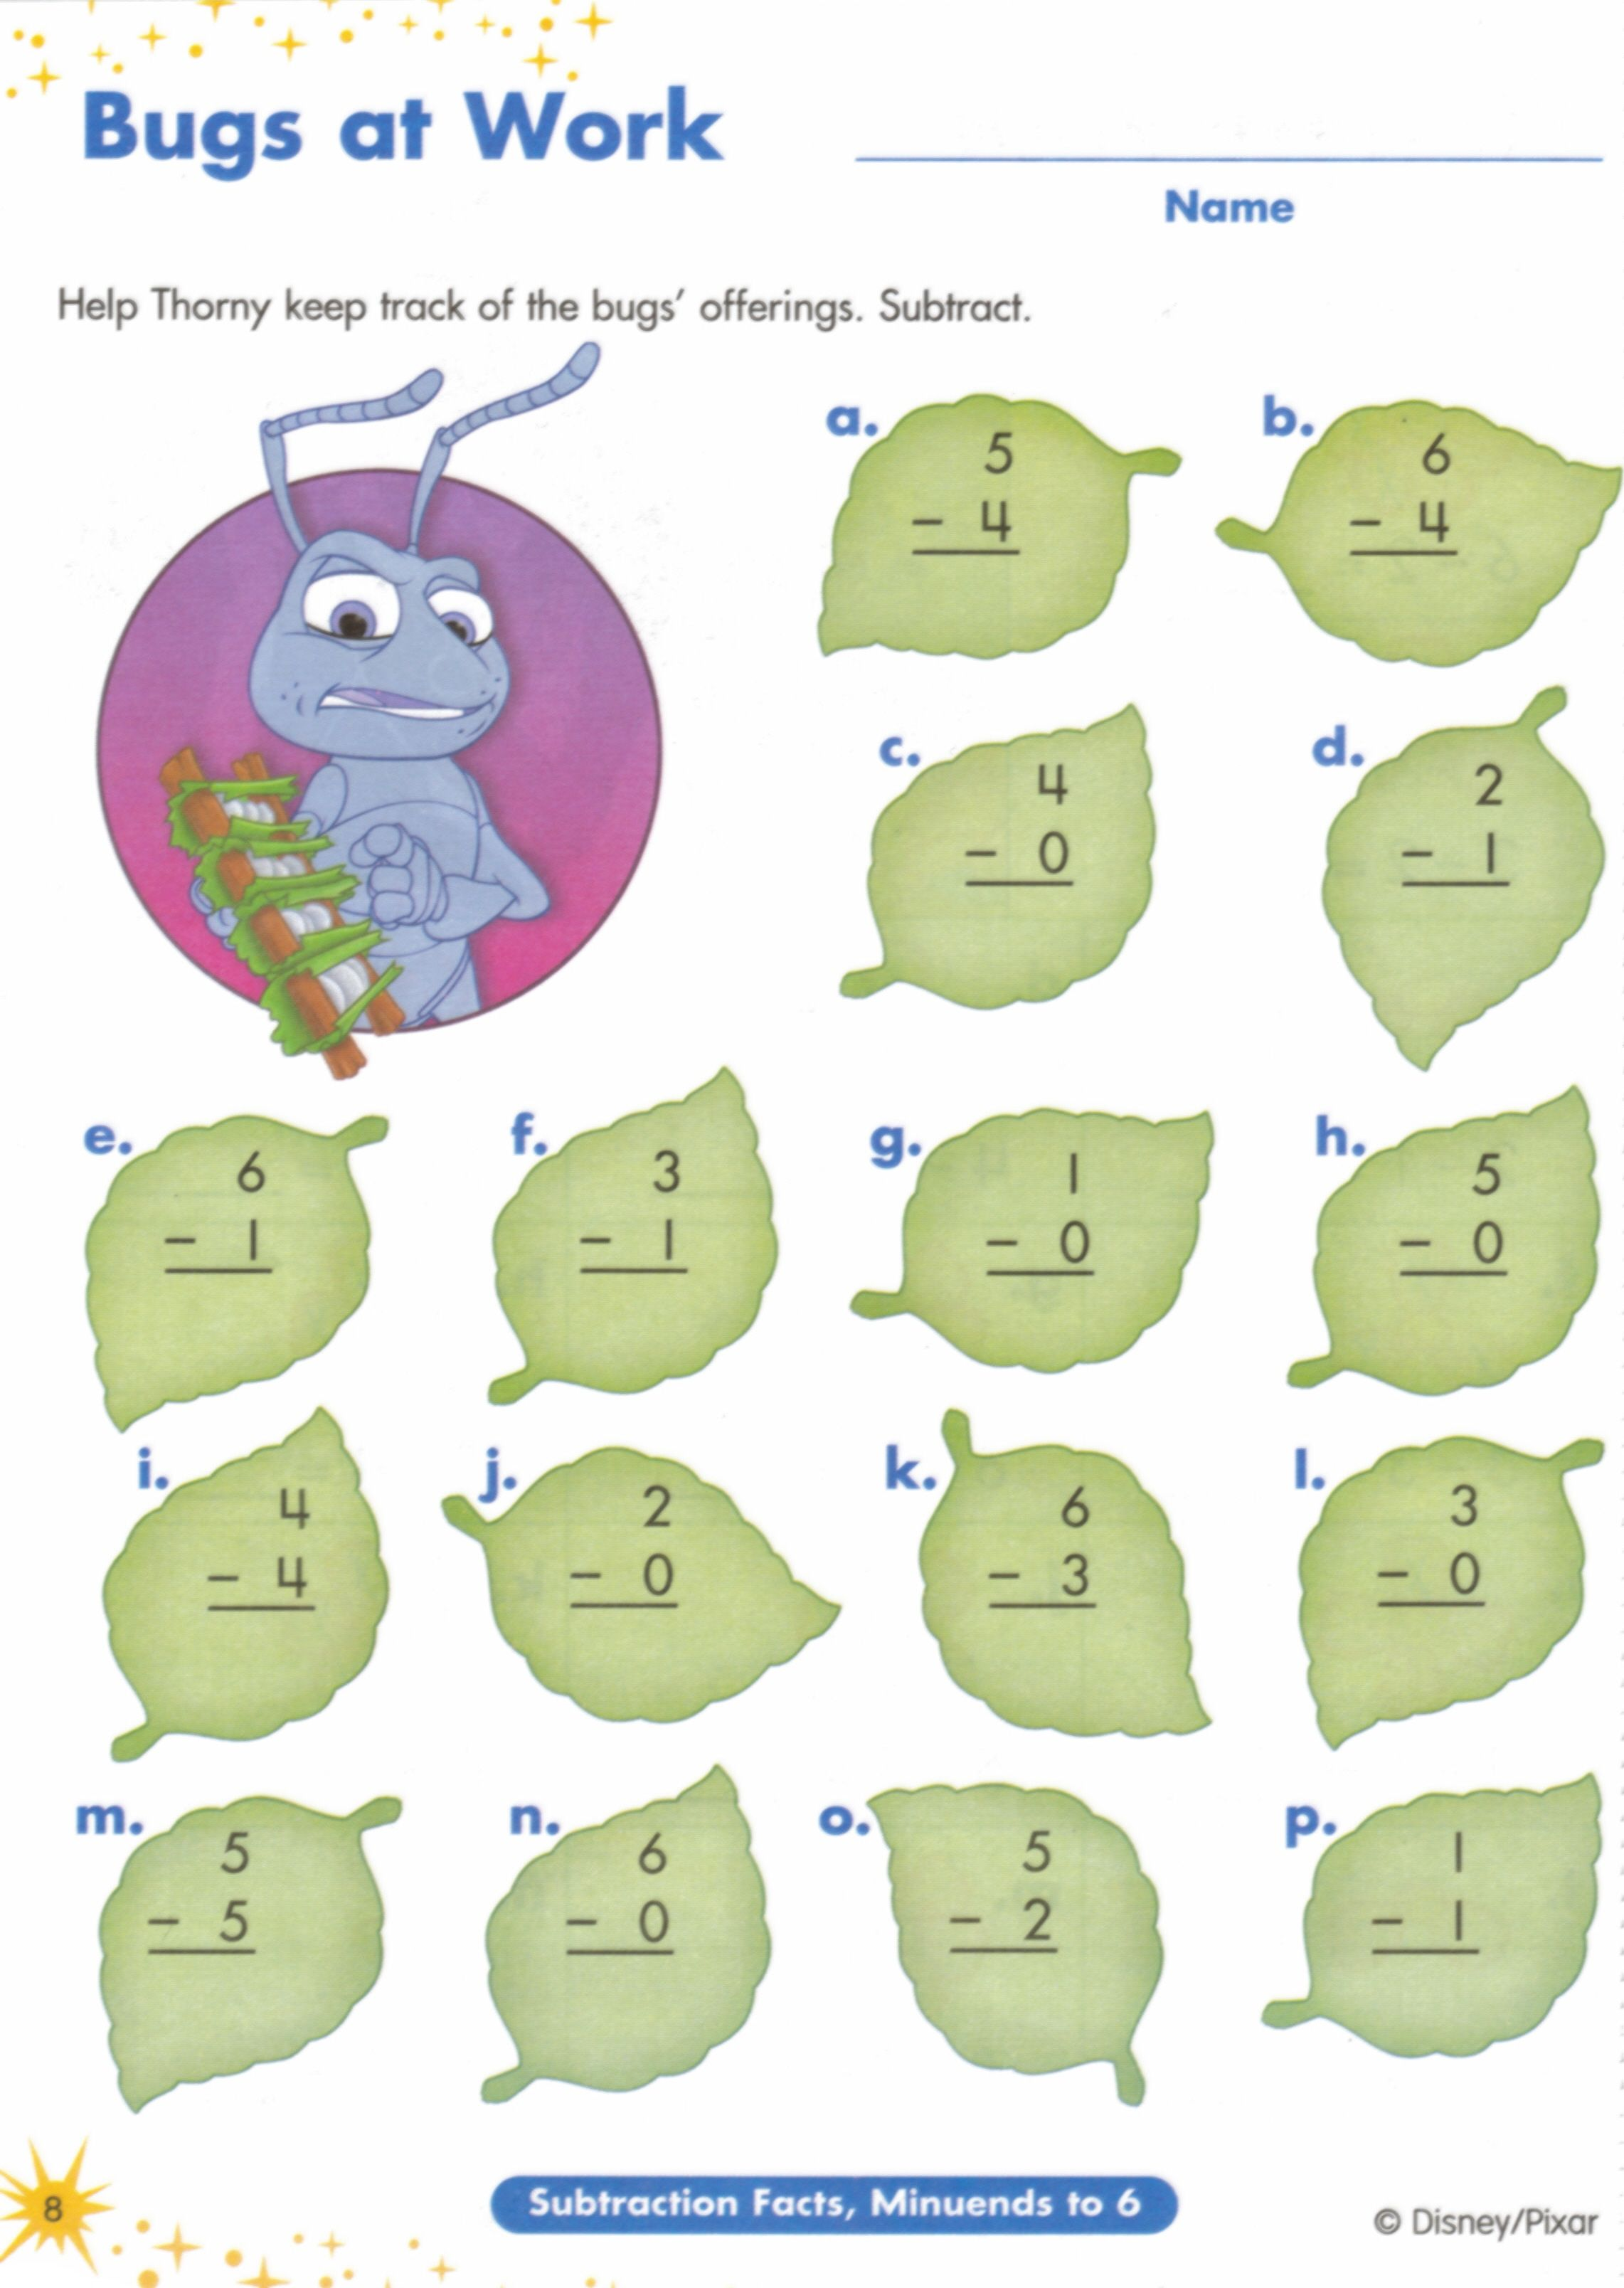 Proatmealus  Marvellous  Images About Worksheets On Pinterest  Fun Facts For Kids  With Remarkable  Images About Worksheets On Pinterest  Fun Facts For Kids Earth Day Worksheets And Jungles With Easy On The Eye Grammar Skills Worksheets Also Relative Pronouns Worksheets Th Grade In Addition Grammar Worksheets For Second Grade And Saving Private Ryan Worksheet As Well As Reflections And Rotations Worksheet Additionally Parallel Perpendicular Worksheet From Pinterestcom With Proatmealus  Remarkable  Images About Worksheets On Pinterest  Fun Facts For Kids  With Easy On The Eye  Images About Worksheets On Pinterest  Fun Facts For Kids Earth Day Worksheets And Jungles And Marvellous Grammar Skills Worksheets Also Relative Pronouns Worksheets Th Grade In Addition Grammar Worksheets For Second Grade From Pinterestcom